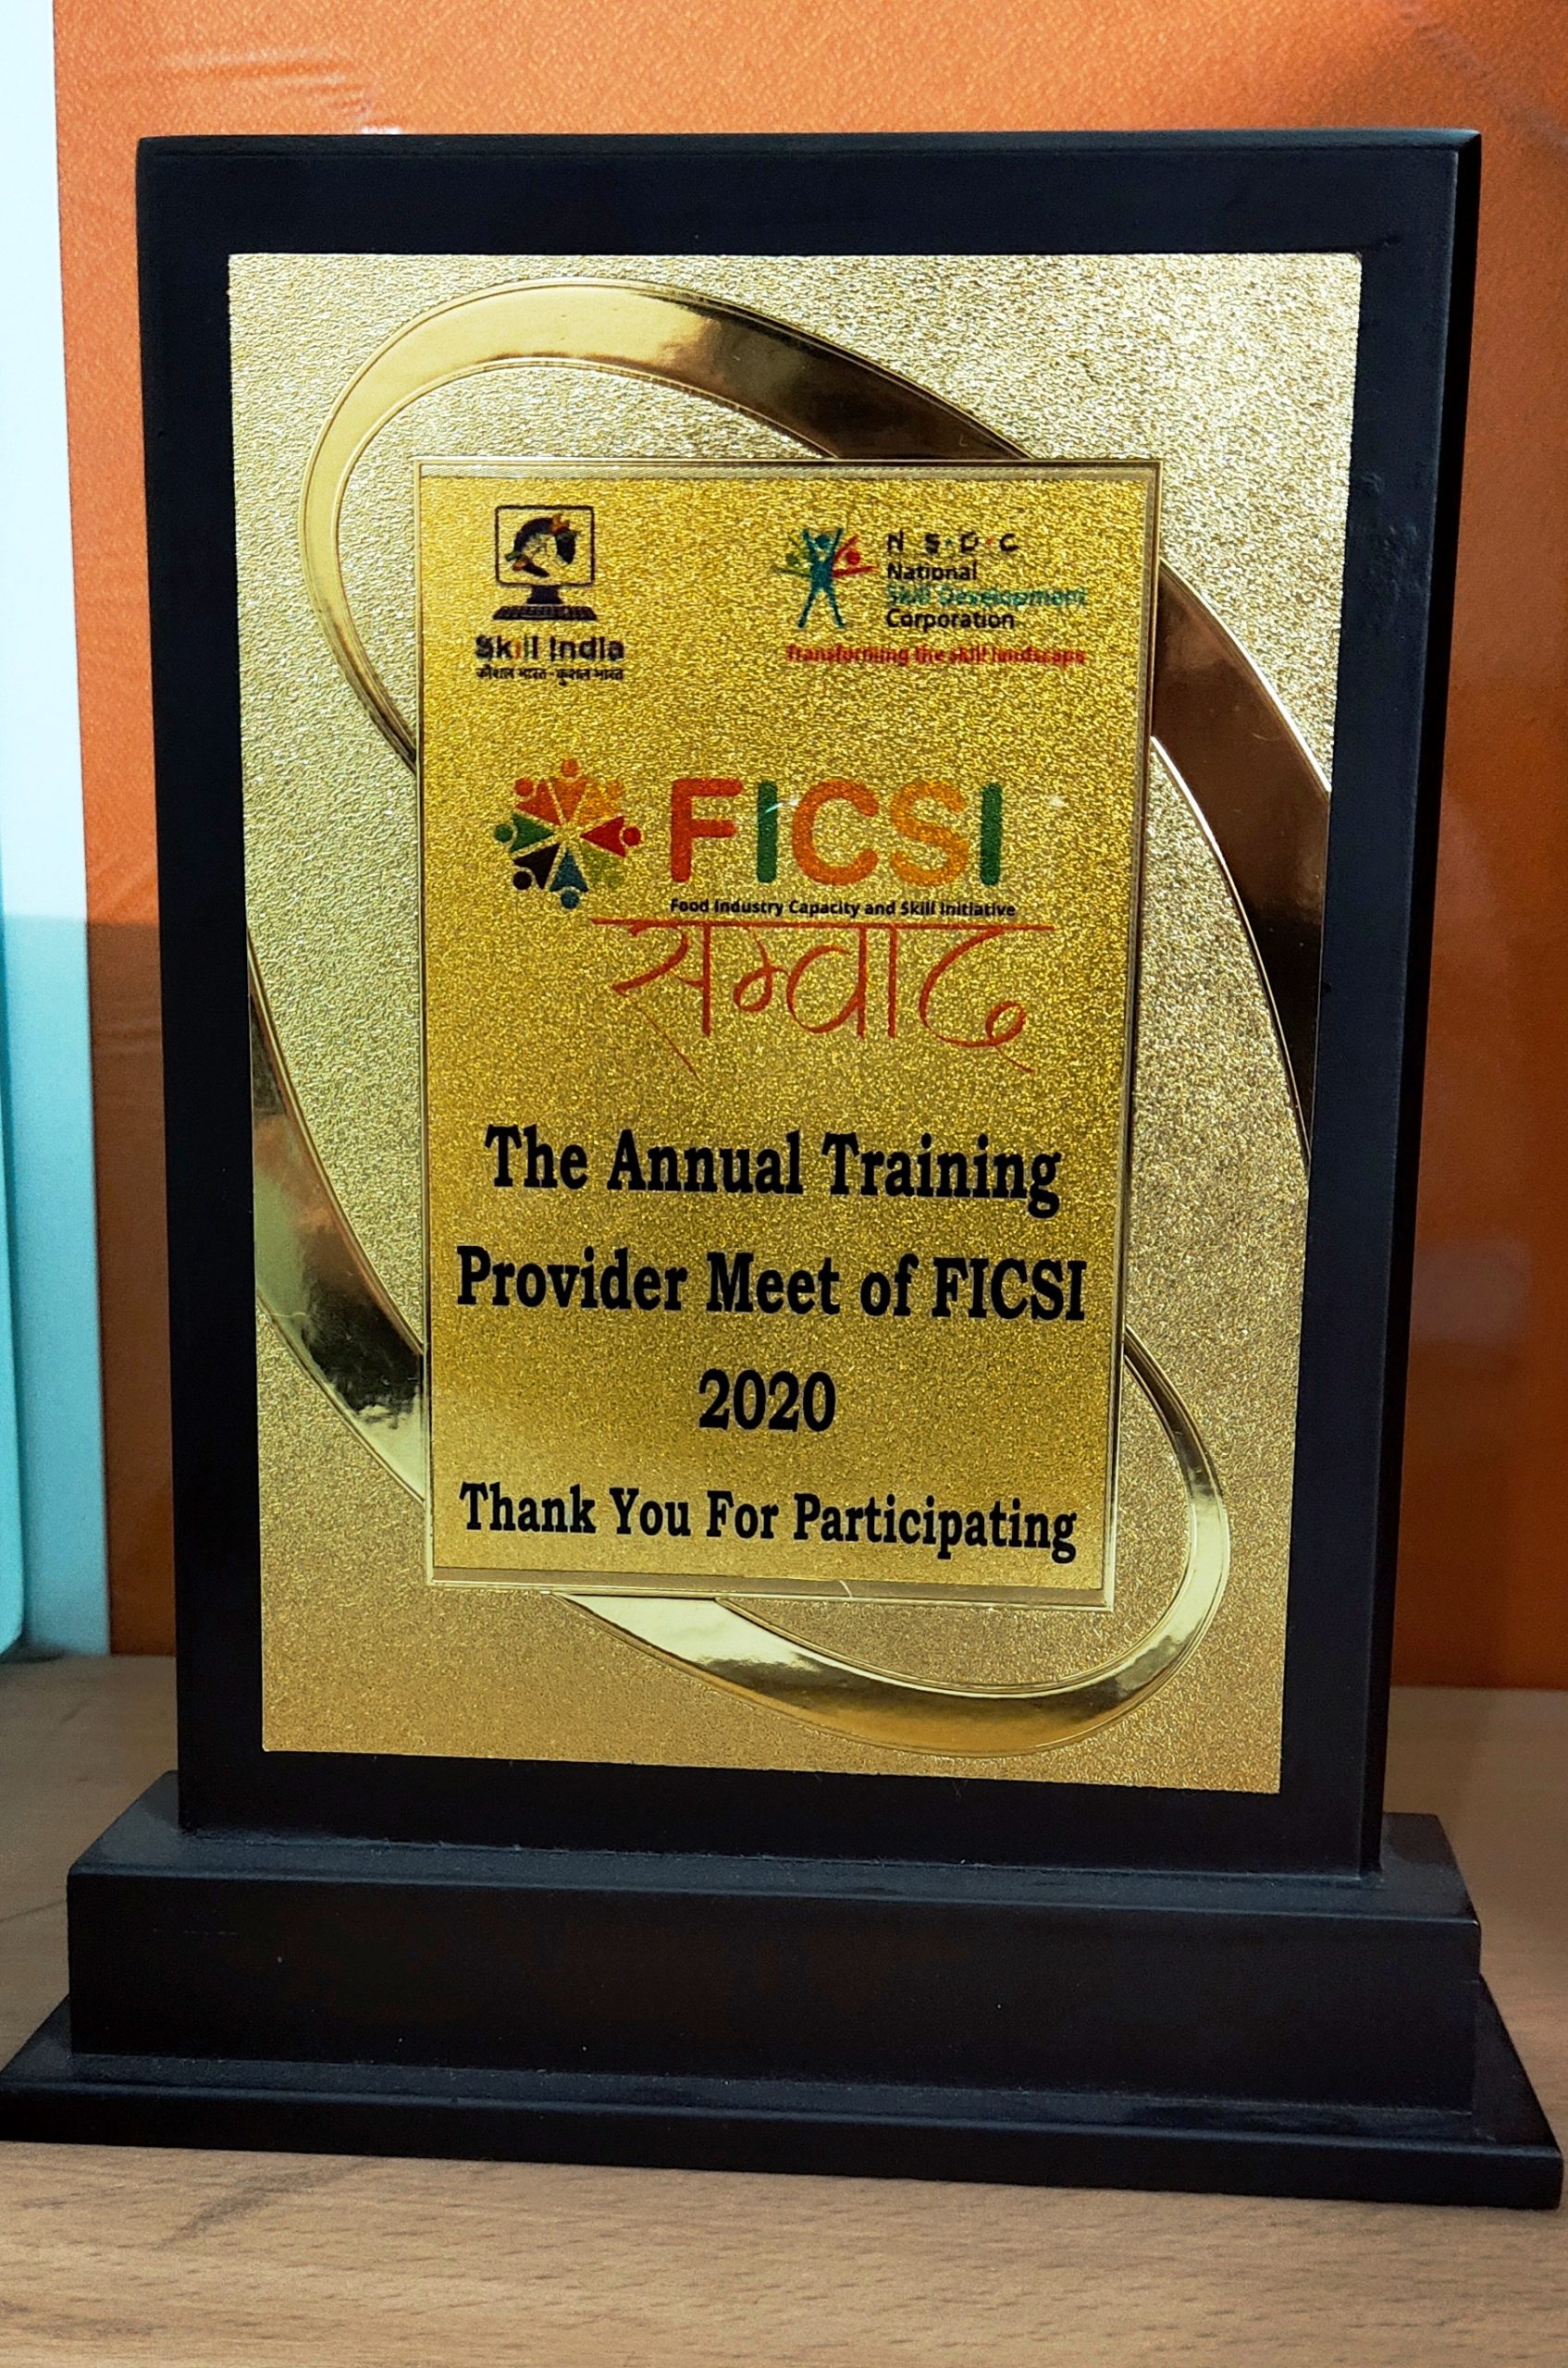 FICSI Annual Training